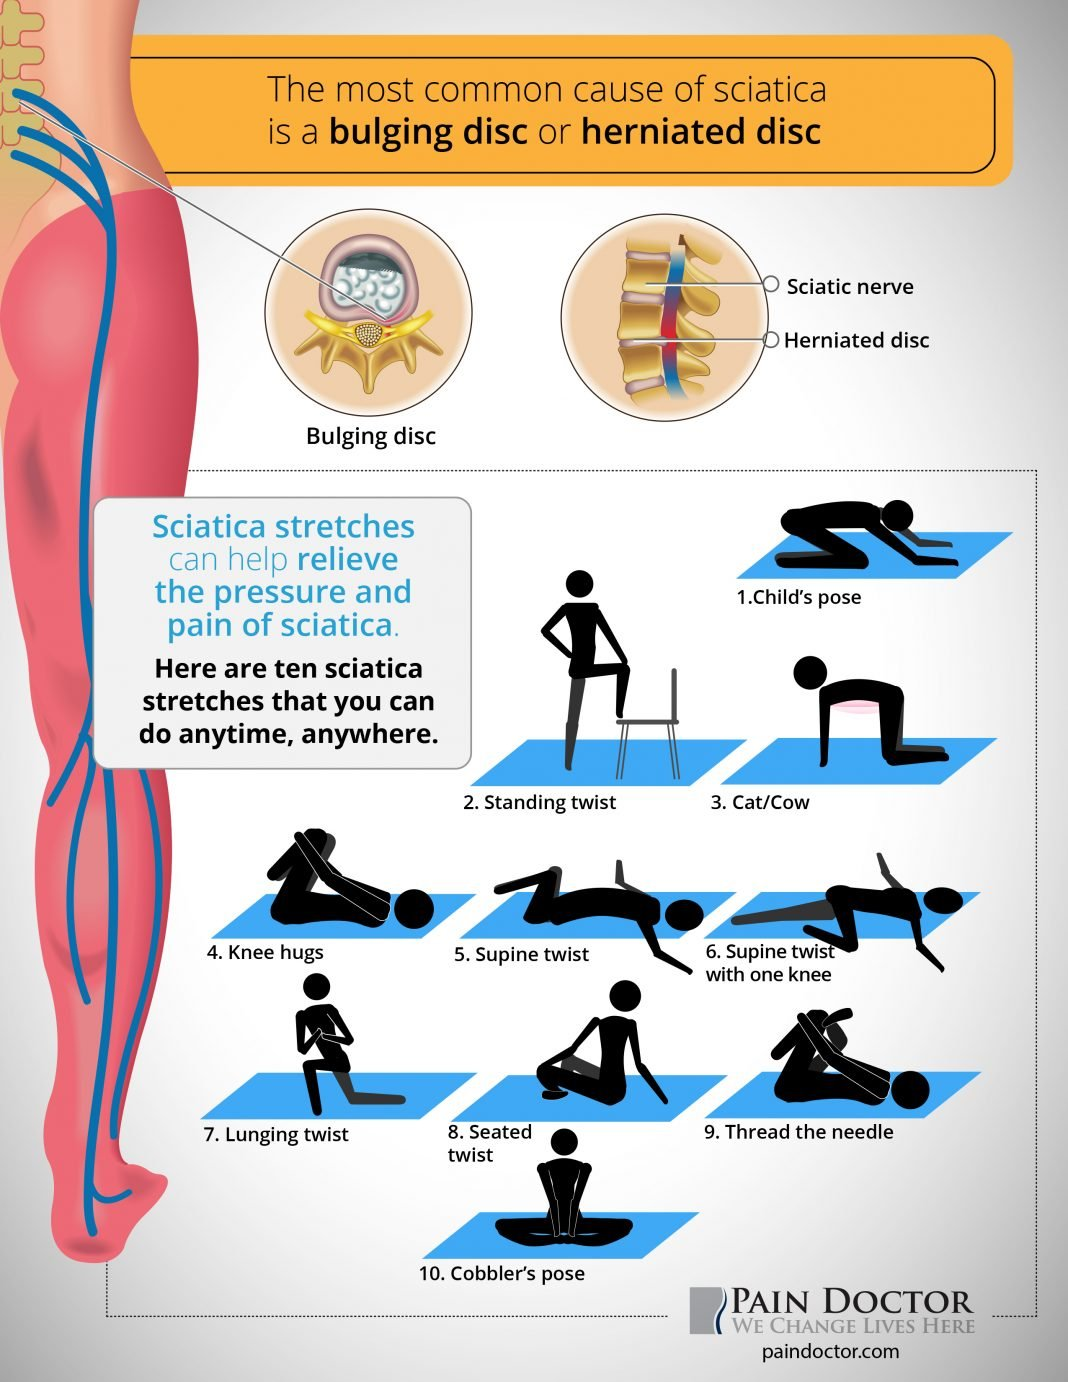 10 sciatica stretches you can do anytime anywhere pain